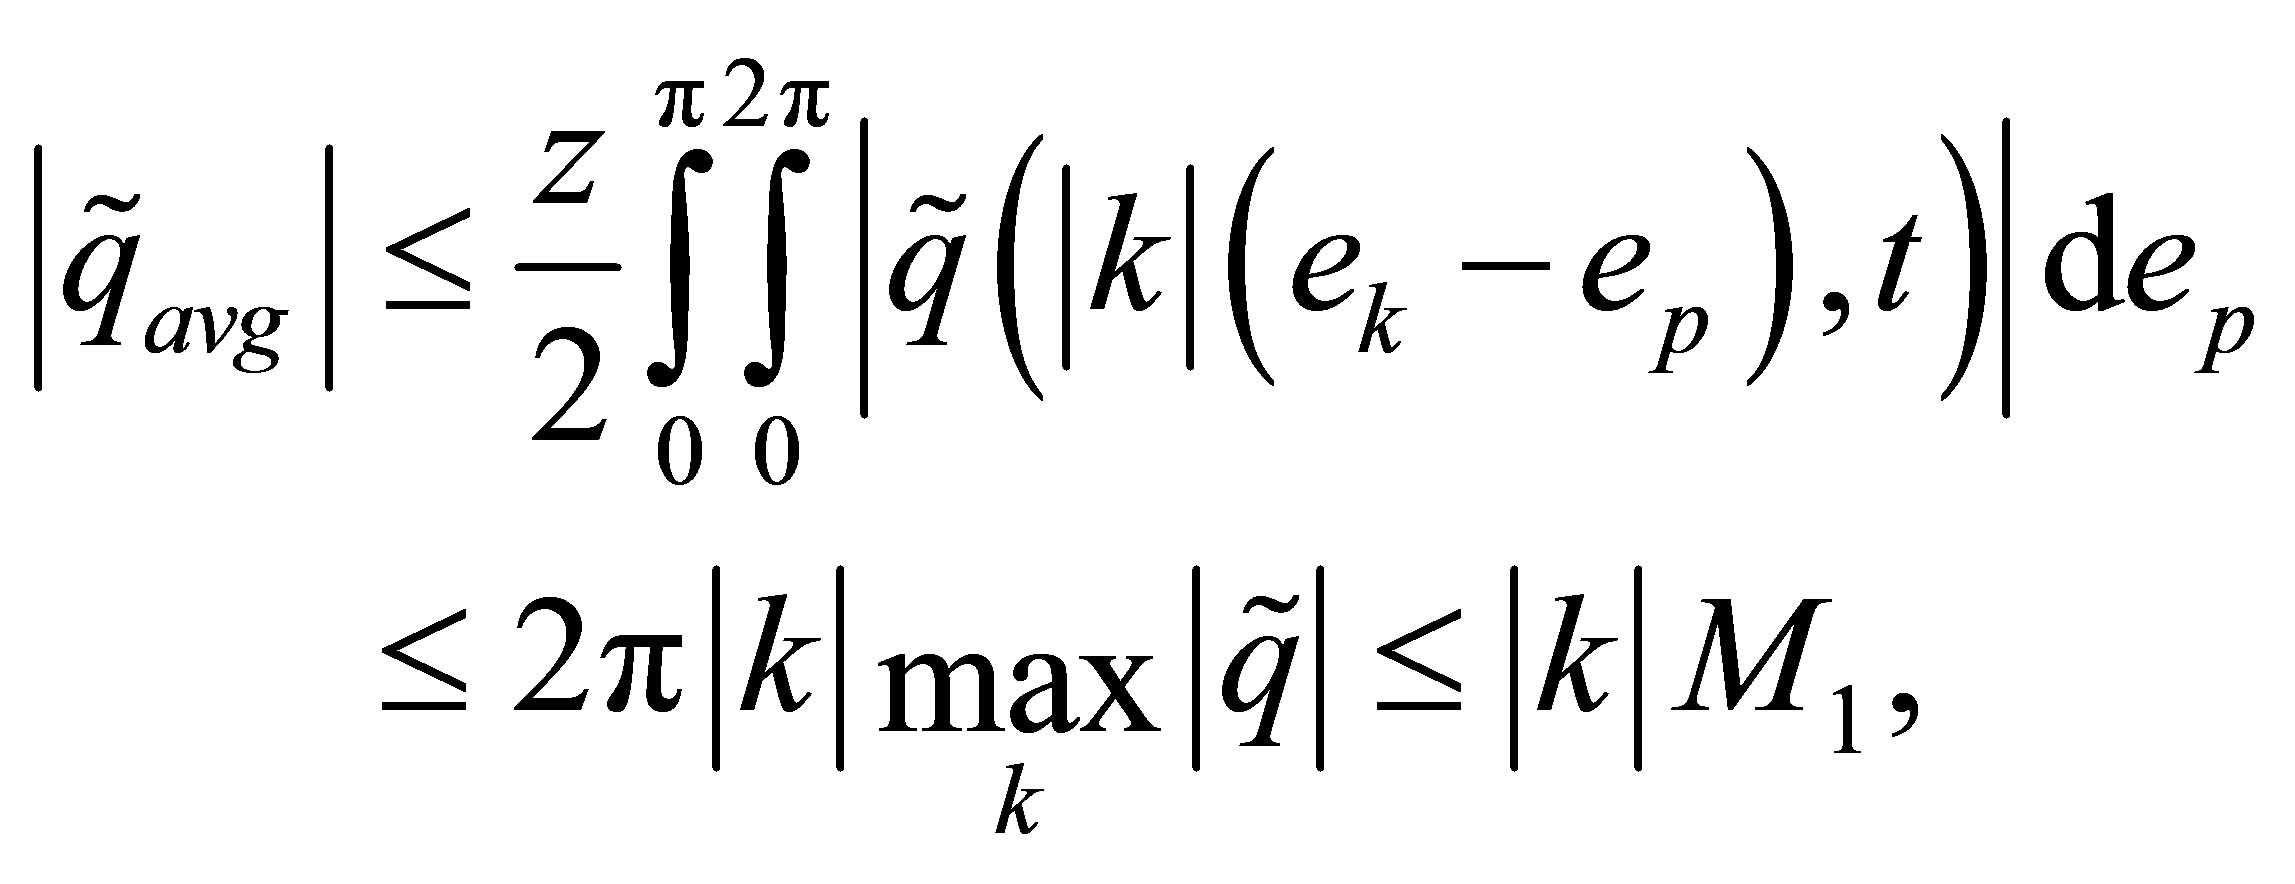 global estimation of the cauchy problem solutions u2019 fourier transform derivatives for the navier